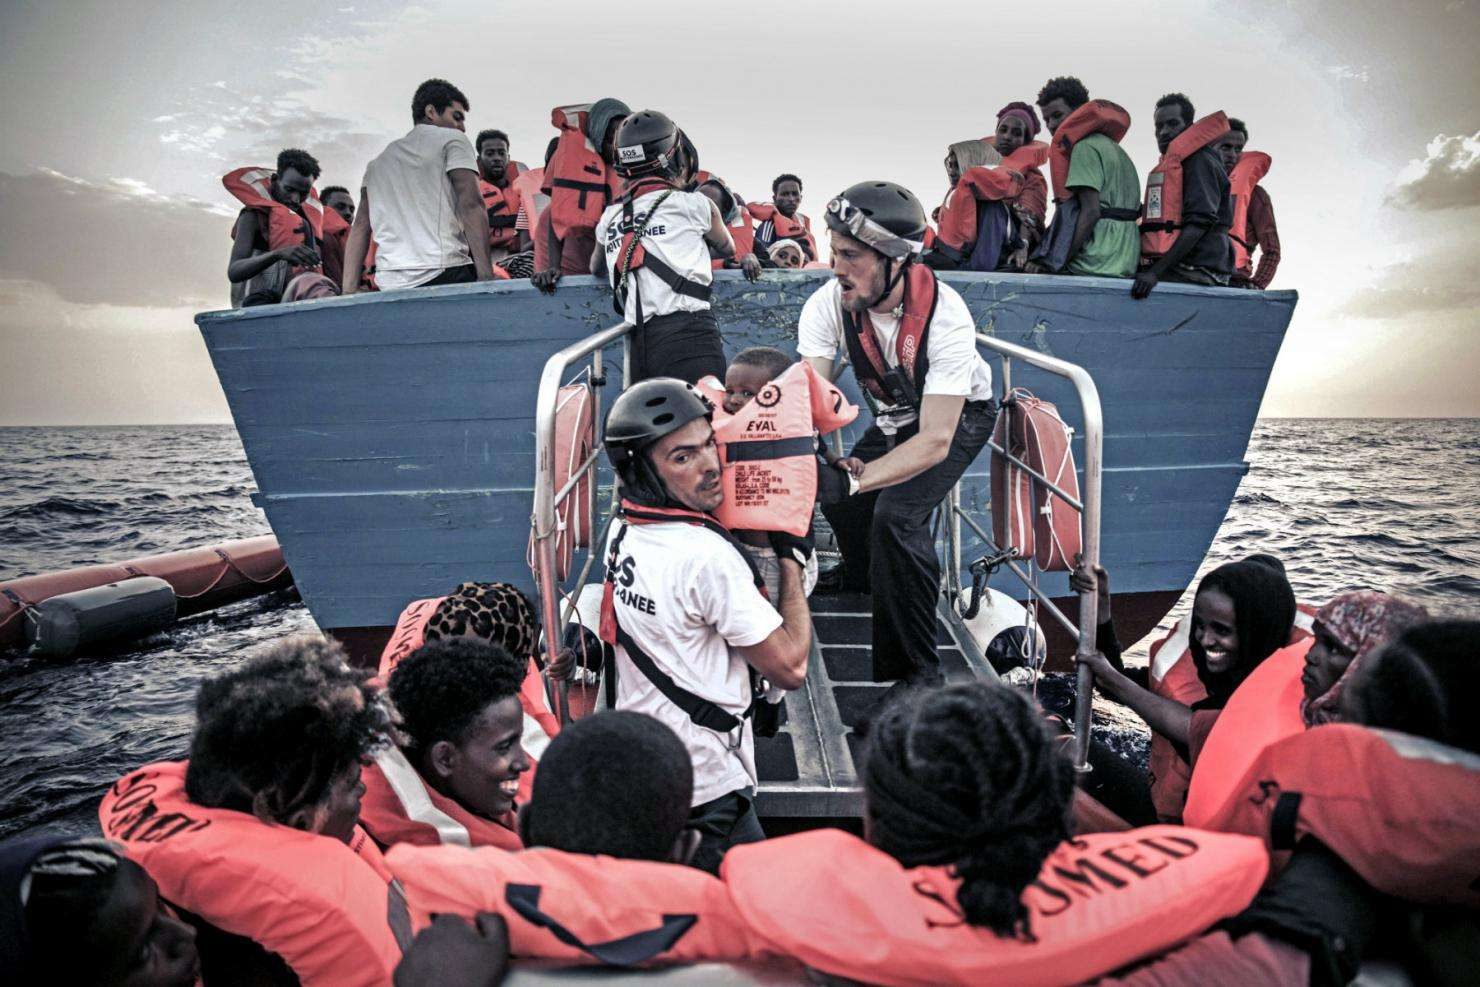 Teams from MSF and SOS Mediteranee help refugees and migrants.